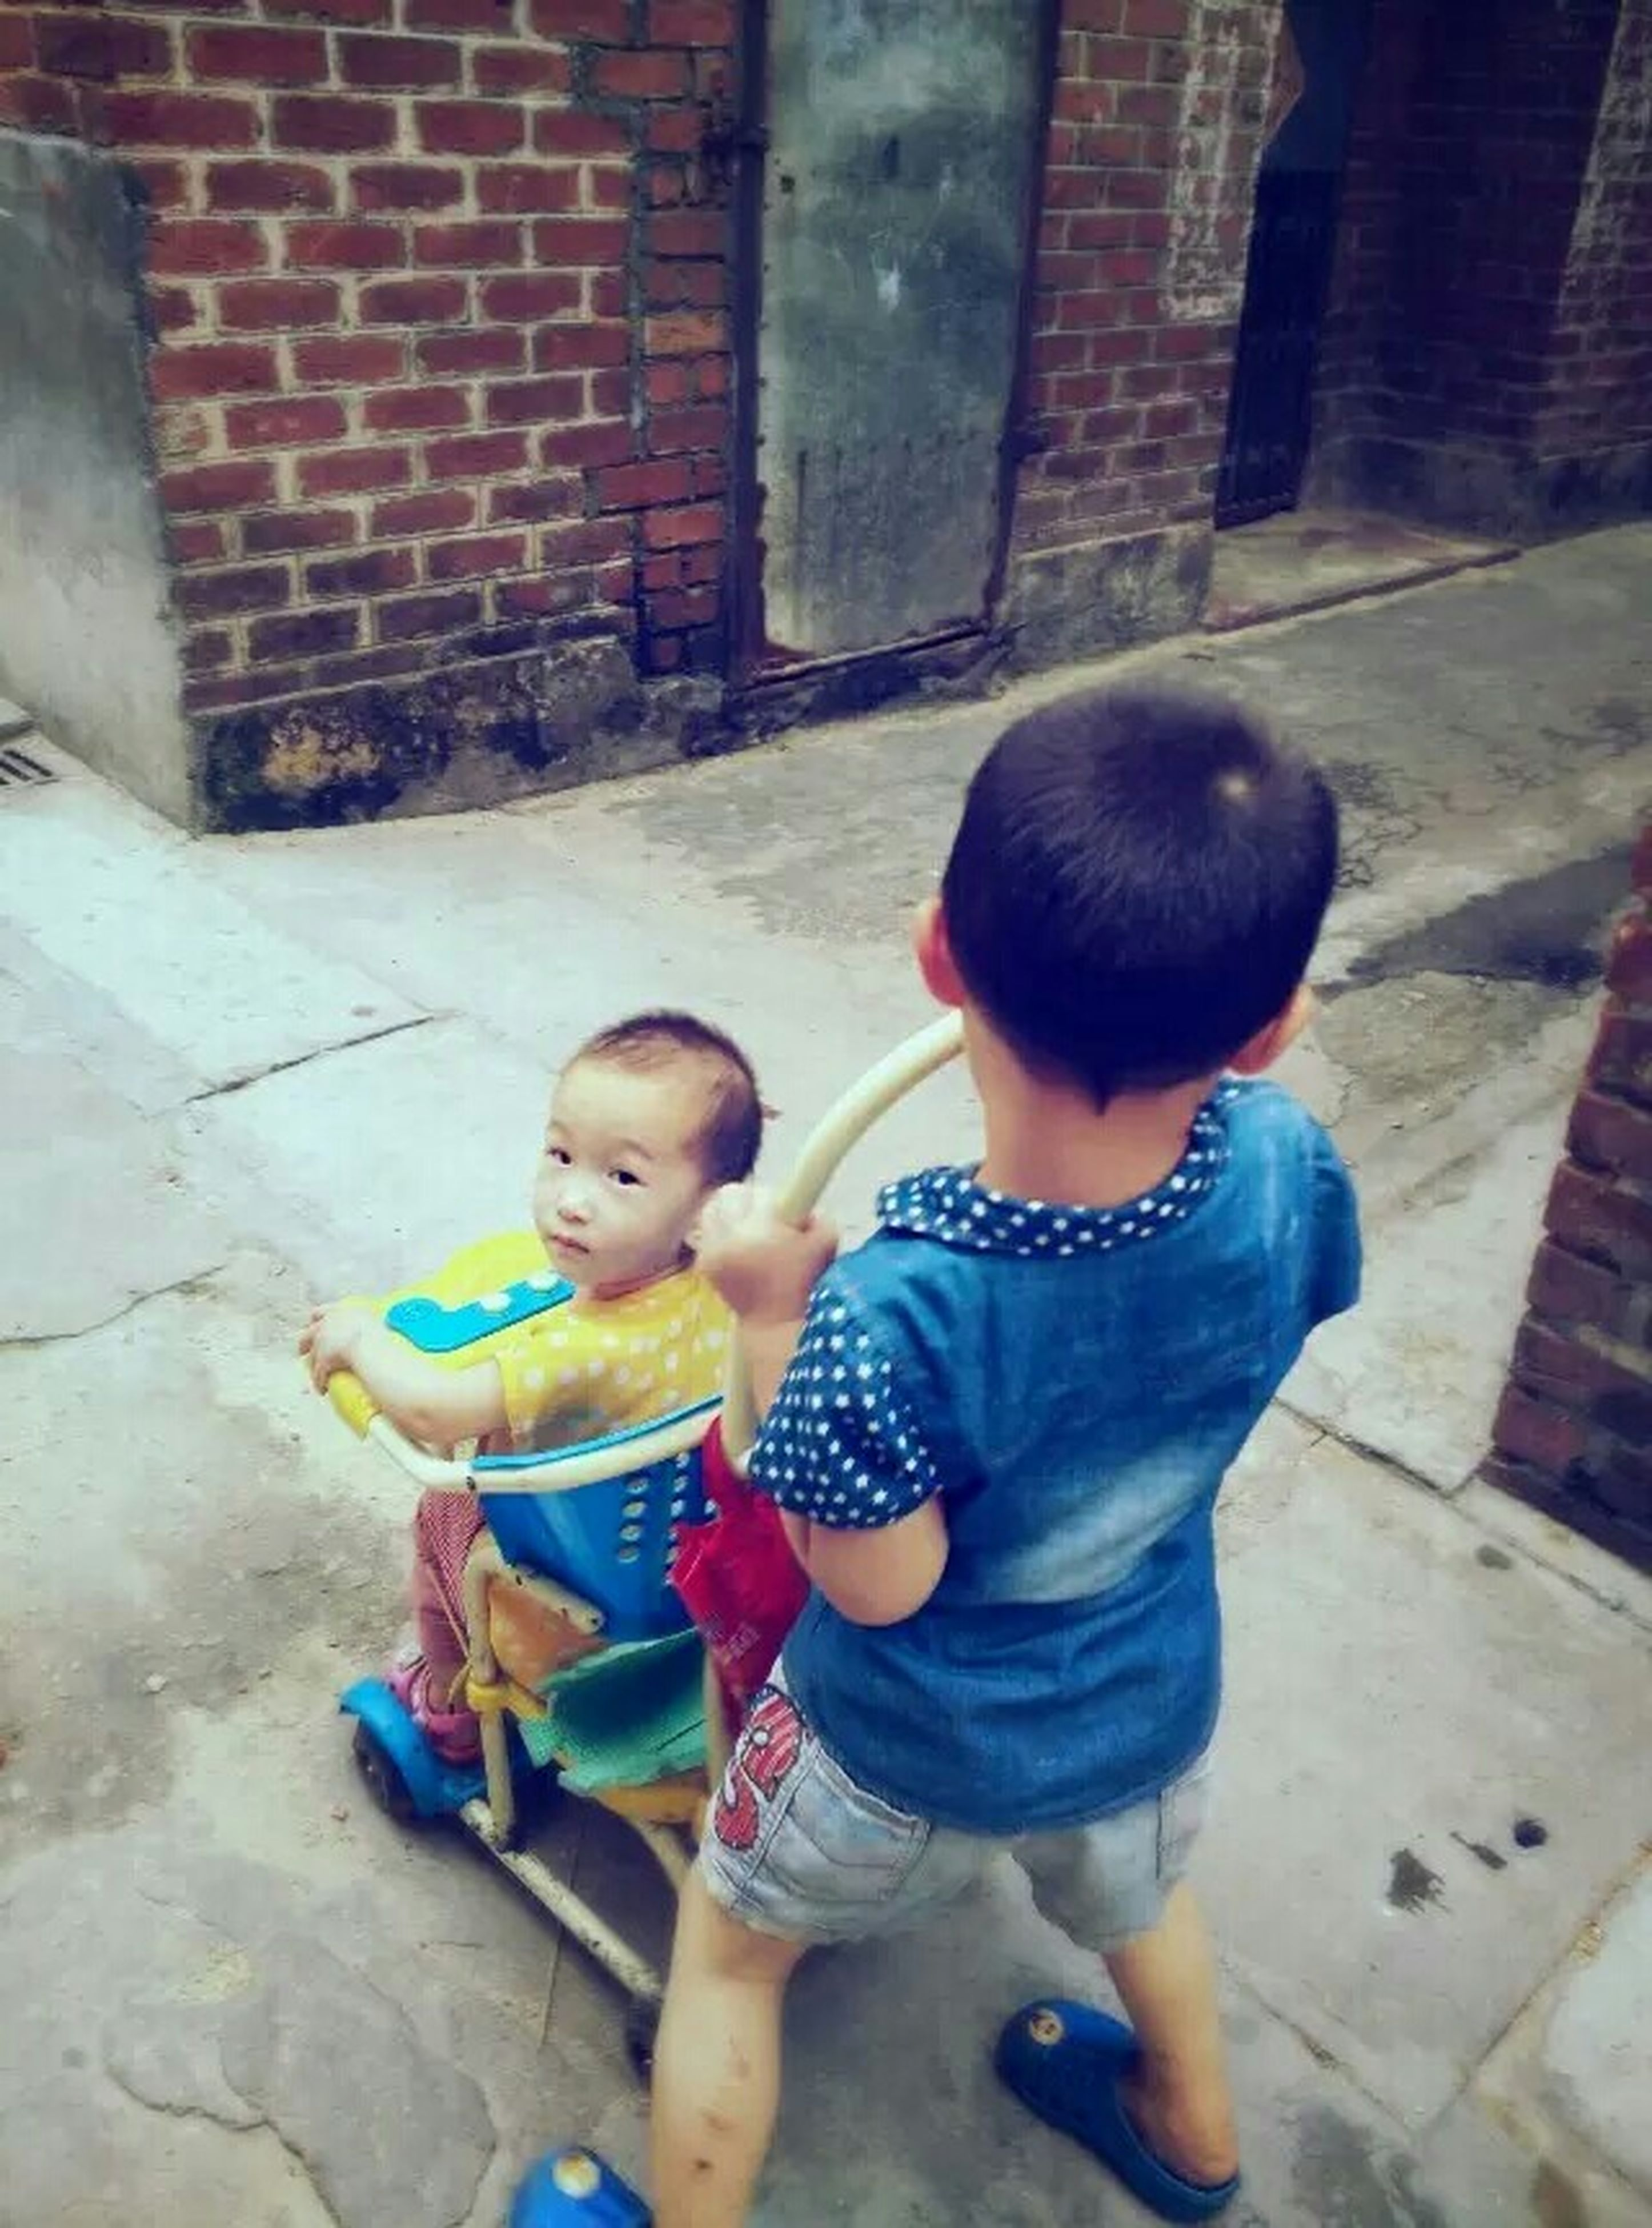 childhood, elementary age, boys, innocence, cute, girls, lifestyles, person, casual clothing, leisure activity, full length, preschool age, toddler, playful, happiness, holding, standing